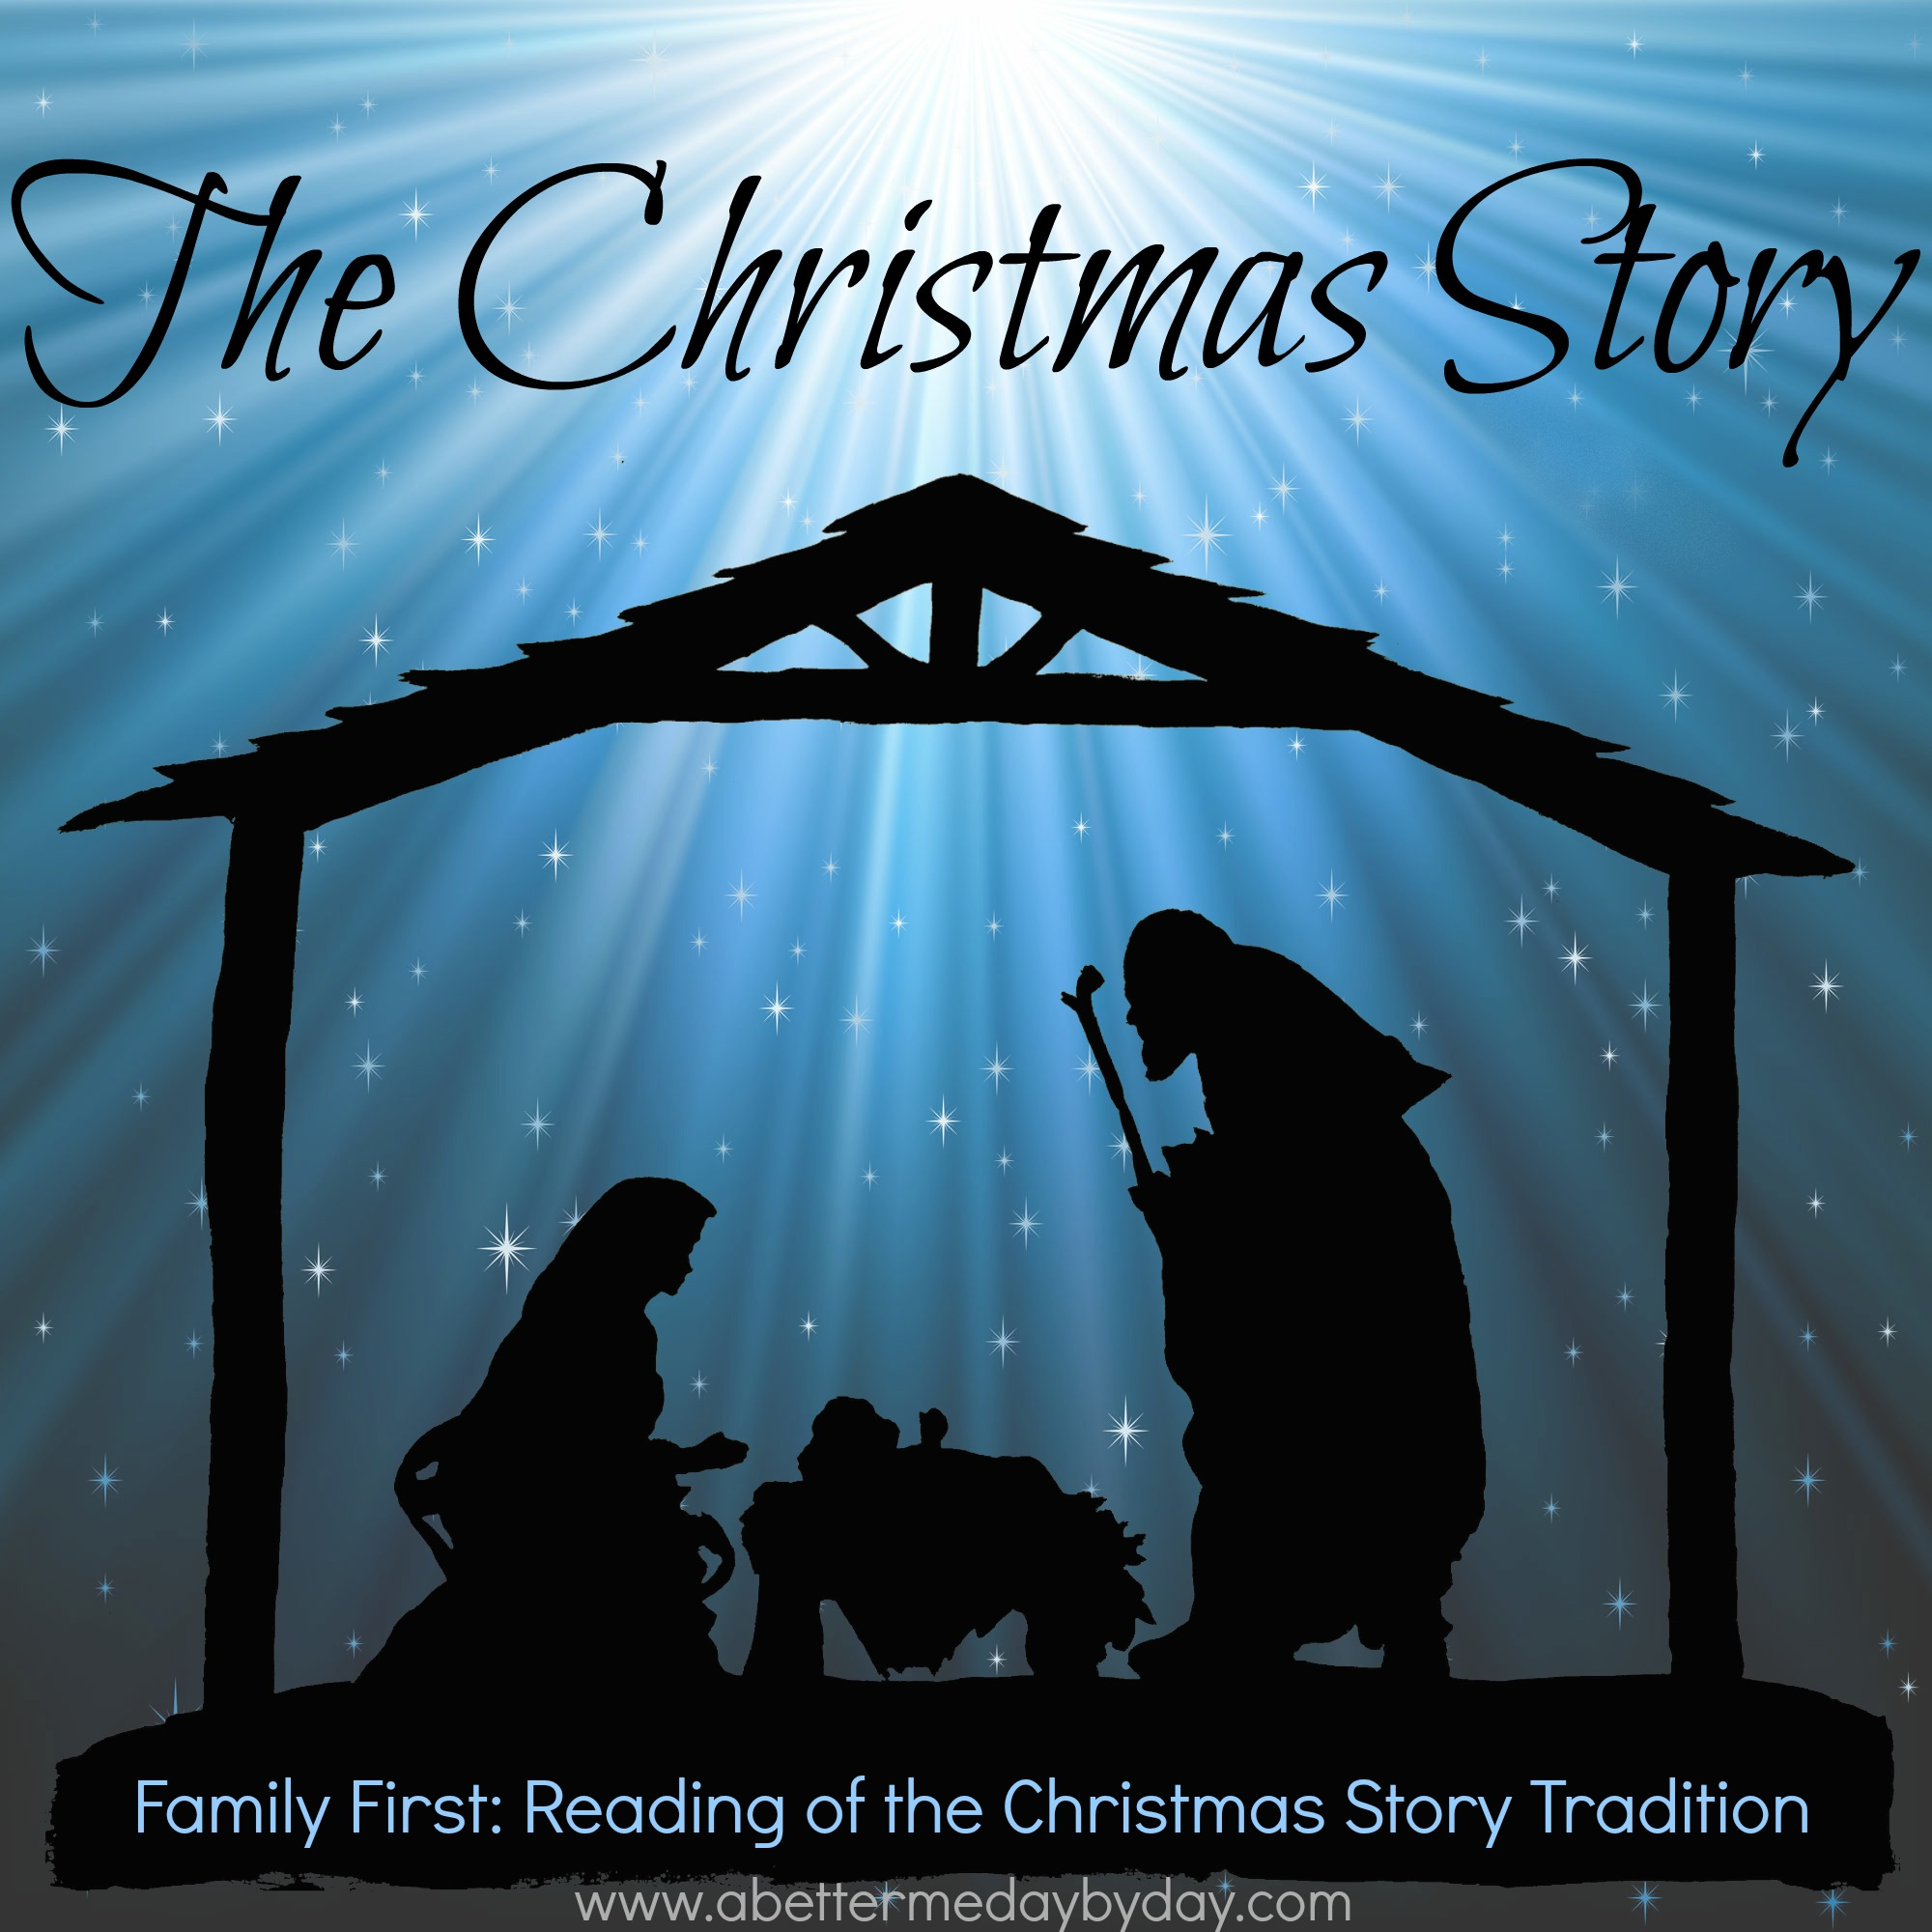 family first reading of the christmas story tradition wwwabettermedaybydaycom